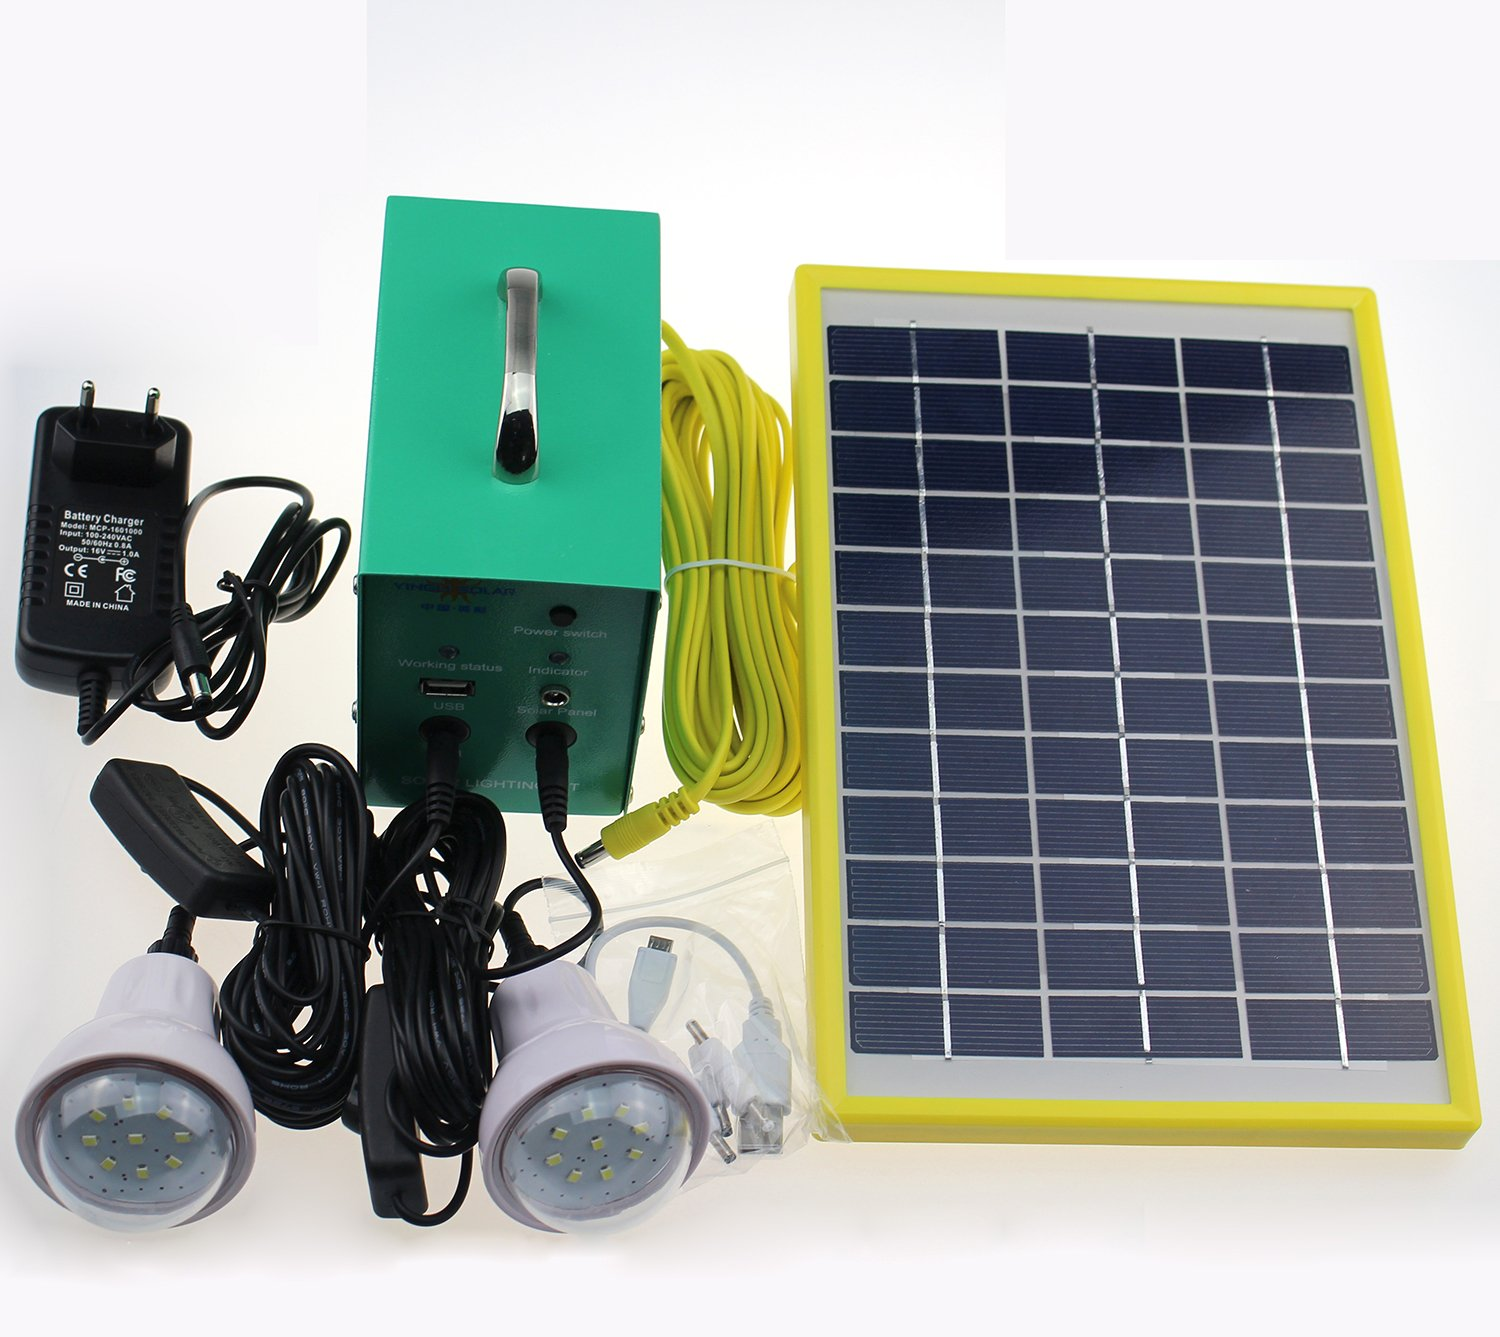 Cowin Solar Lighting Kit - 5W Solar Panel, 12V/4Ah Battery with Controller, 2 x 1W Lamps, 100-240V AC Adapter by COWIN